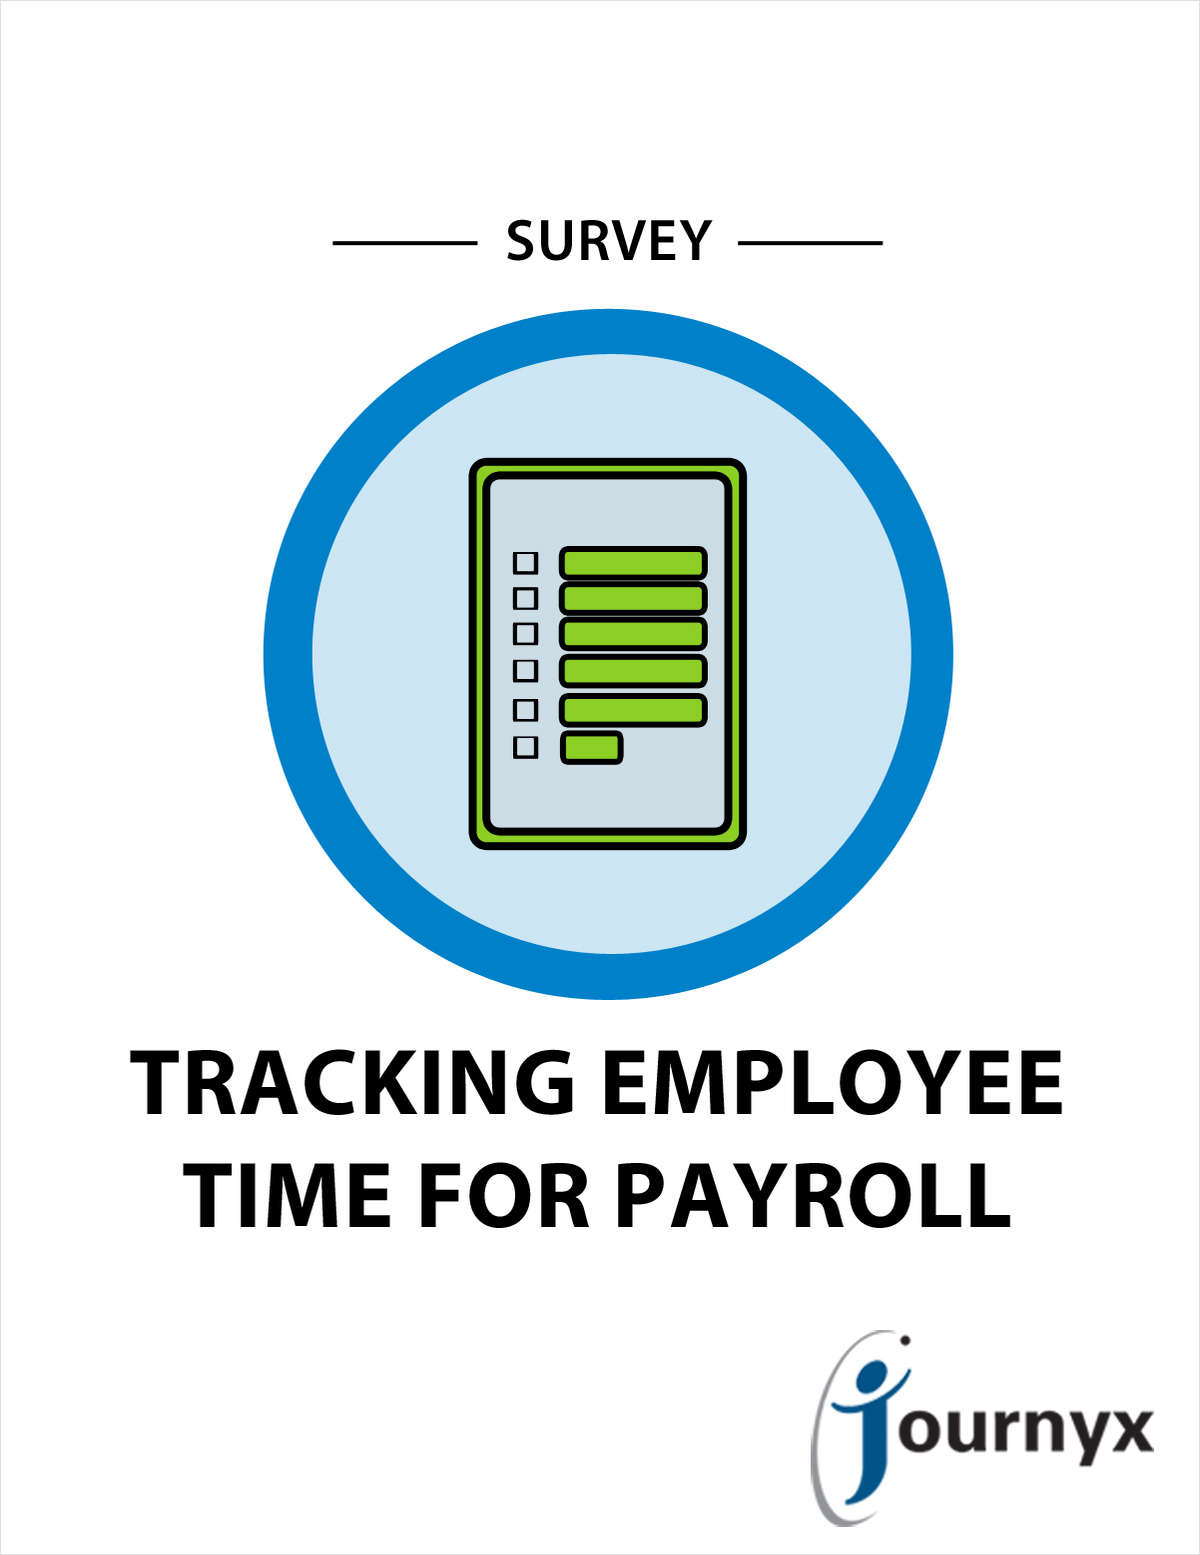 How Does Your Company Track Employee Time for Payroll?